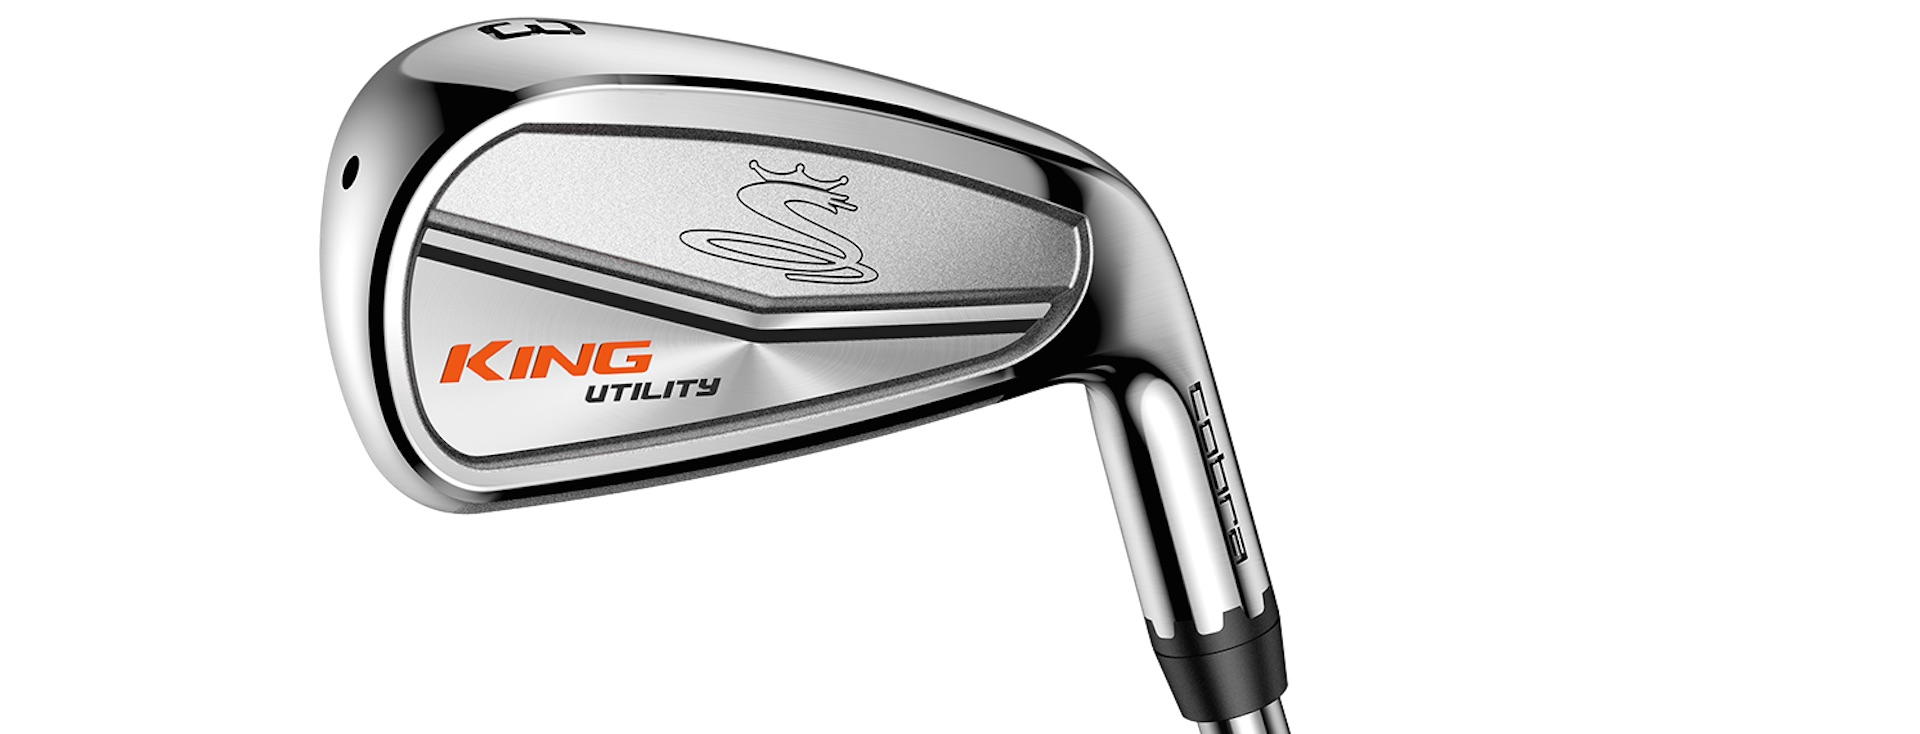 Cobra King Utility Driving Iron